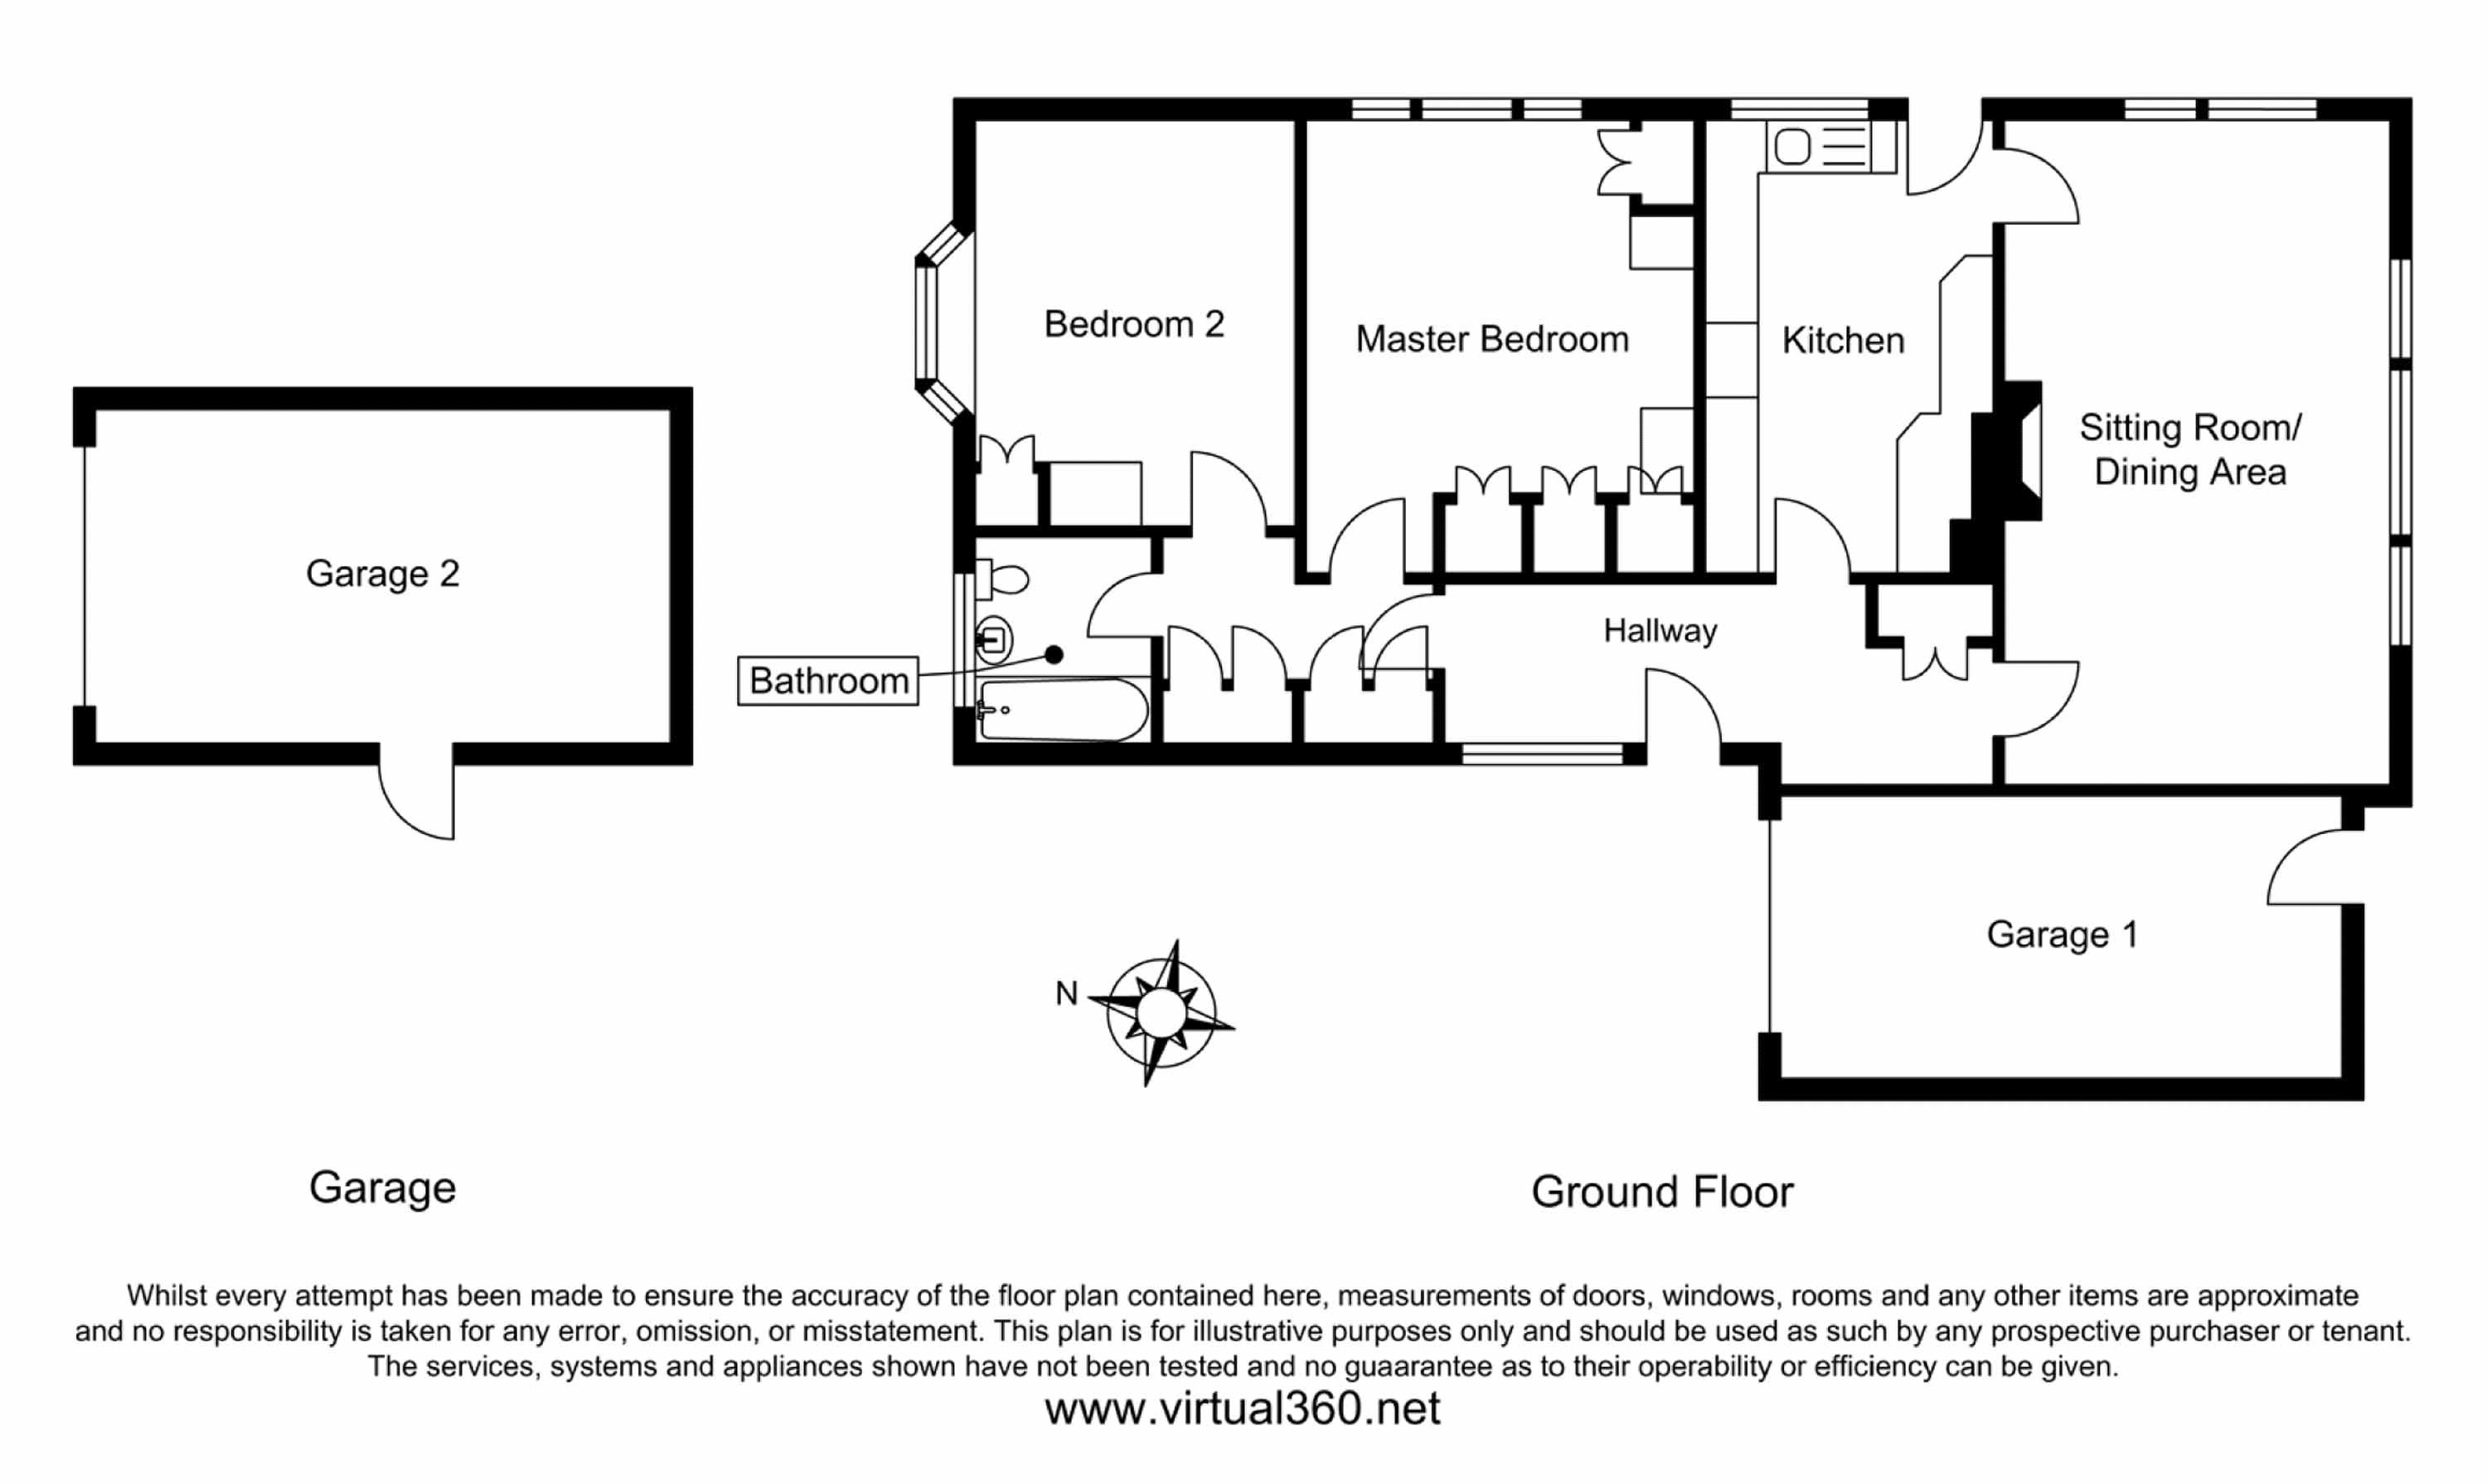 Field Road, Scunthorpe floor plan